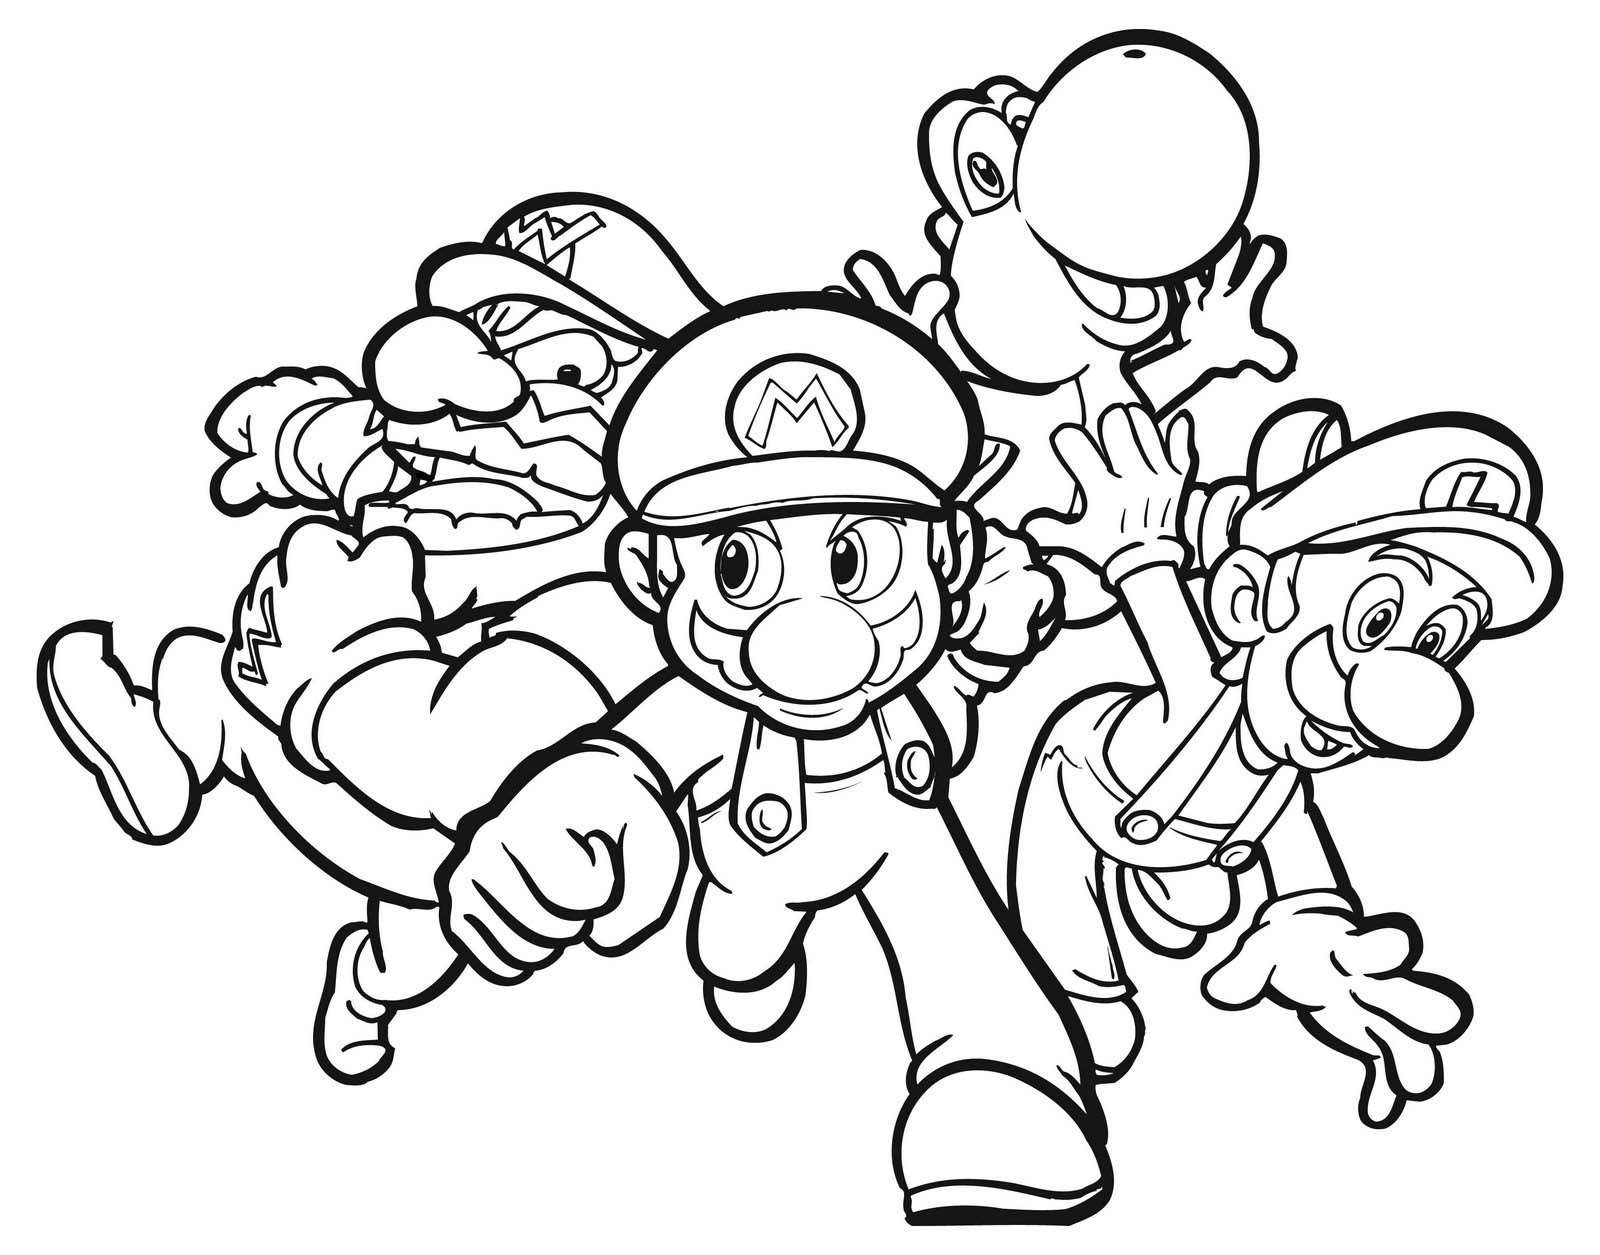 mario coloring mario coloring pages themes best apps for kids mario coloring